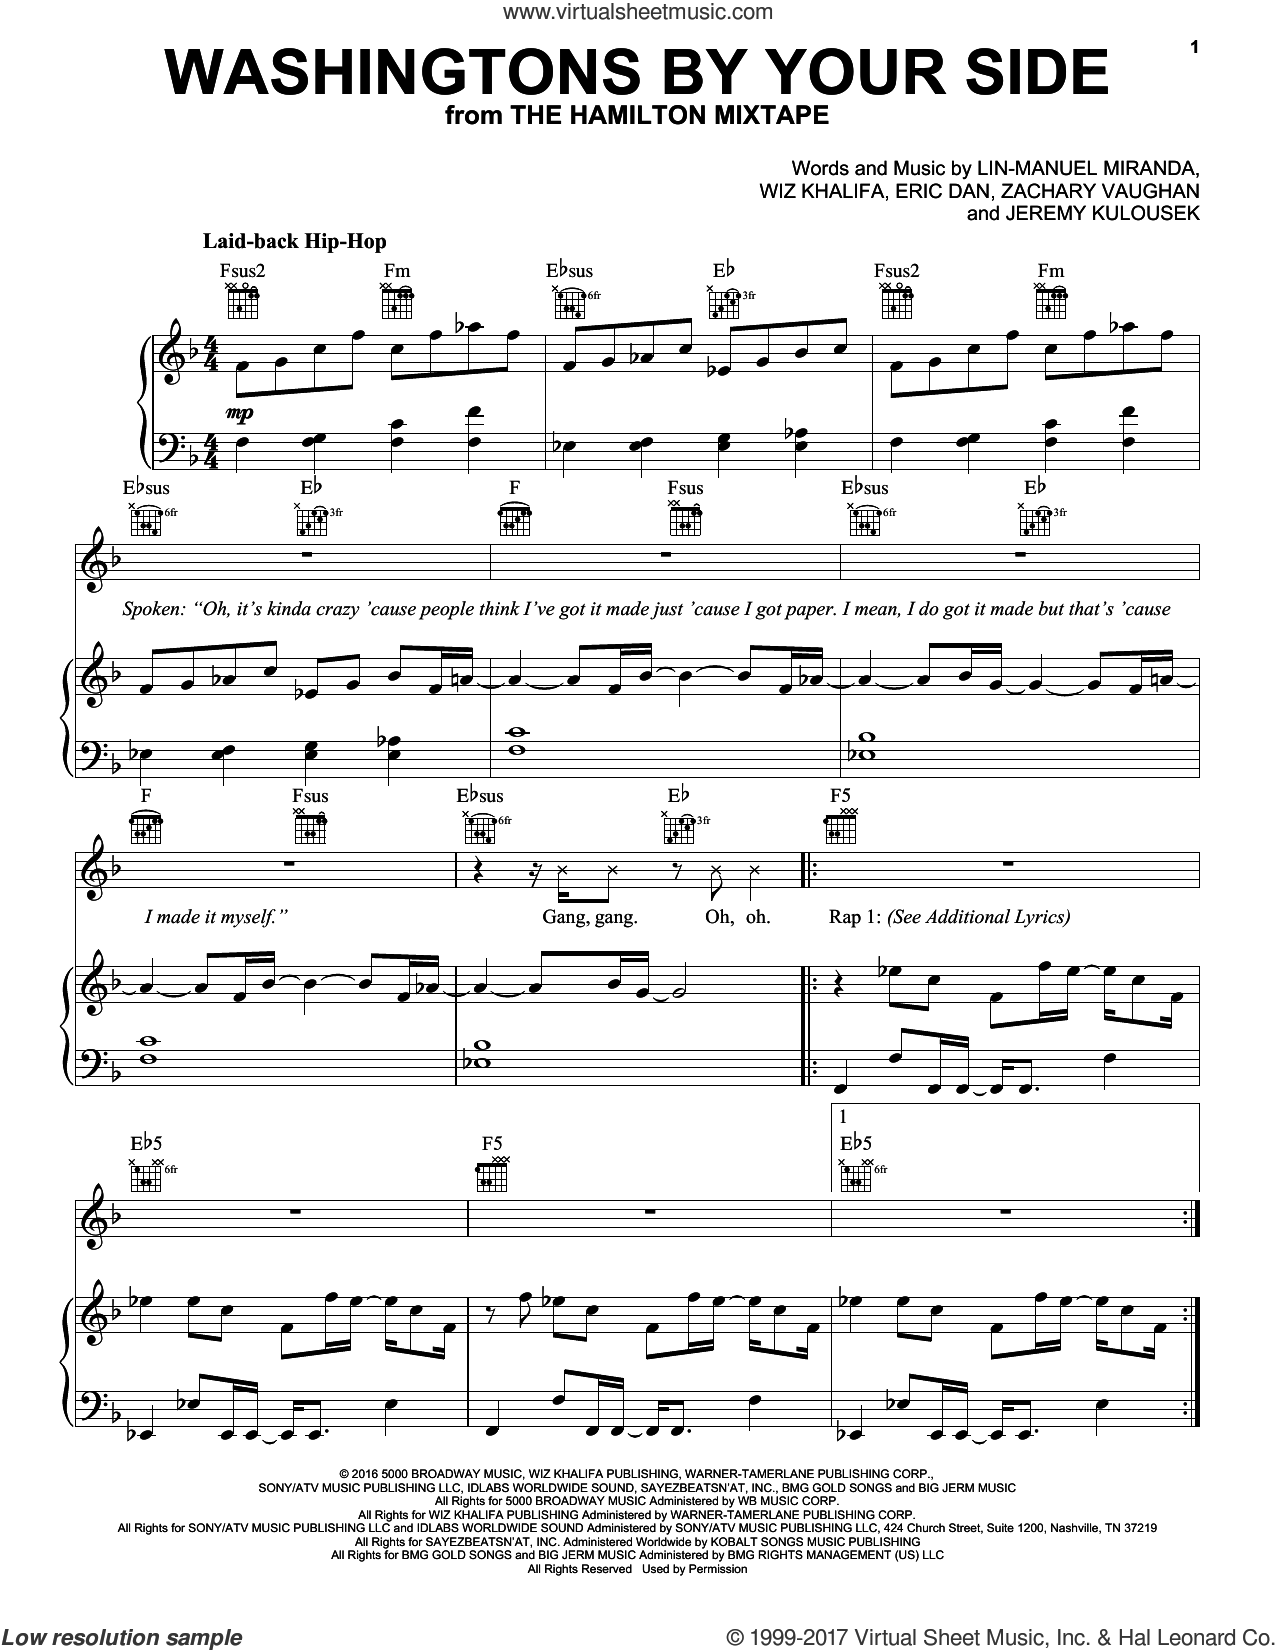 Washingtons By Your Side sheet music for voice, piano or guitar by Lin-Manuel Miranda, Eric Dan, Jeremy Kulousek, Wiz Khalifa and Zachary Vaughan, intermediate. Score Image Preview.